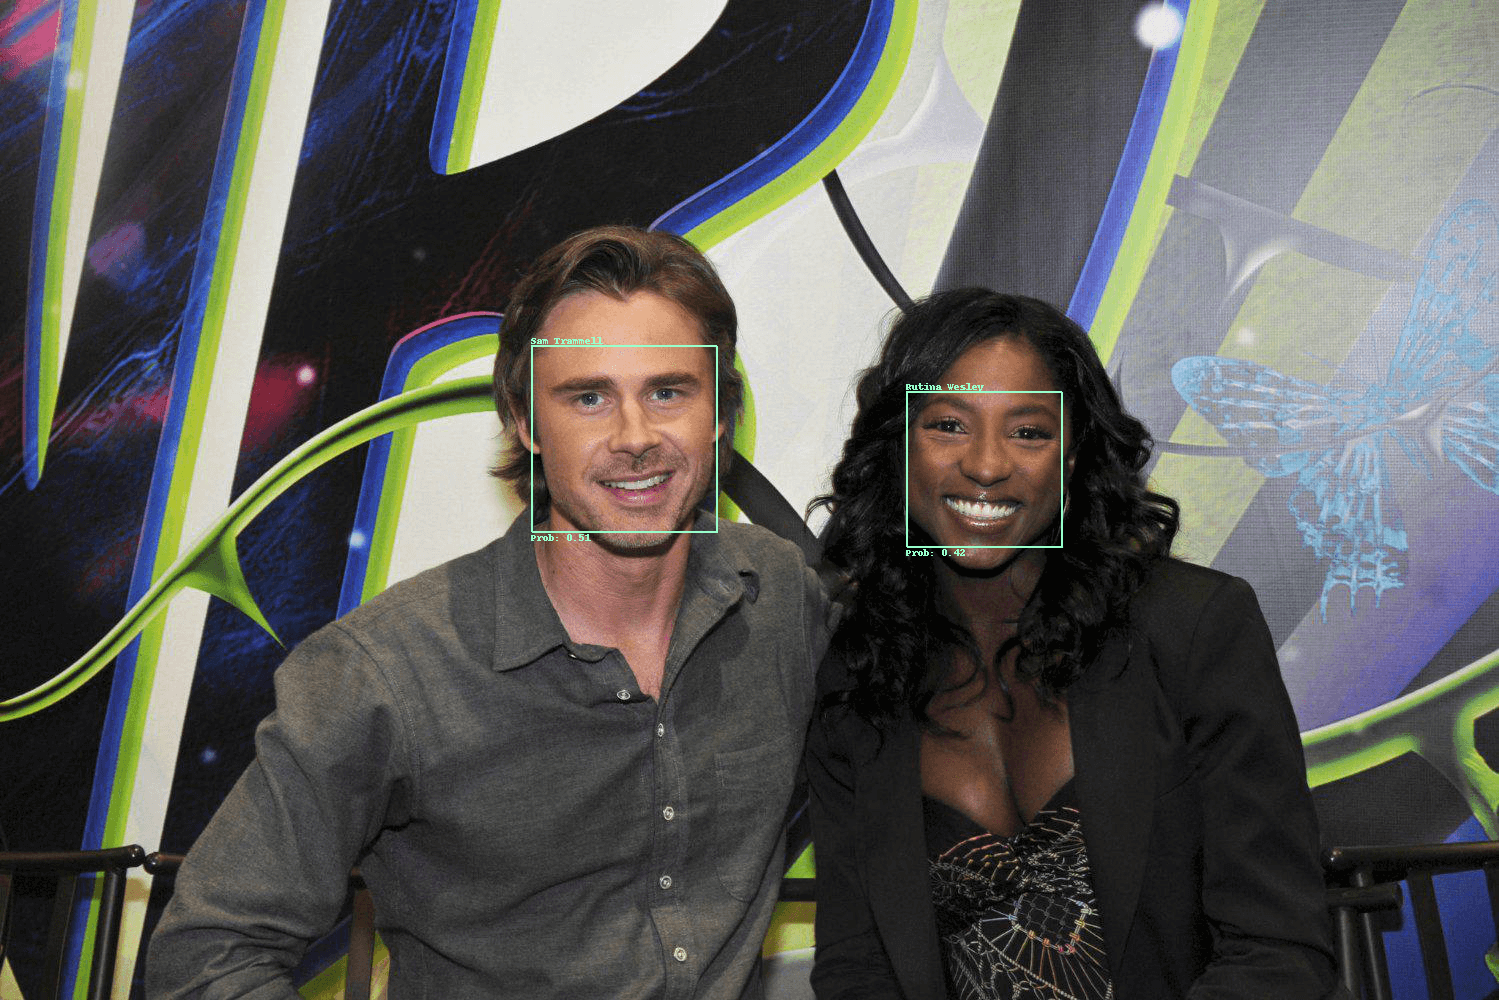 Train a Face Recognition Model to Recognize Celebrities